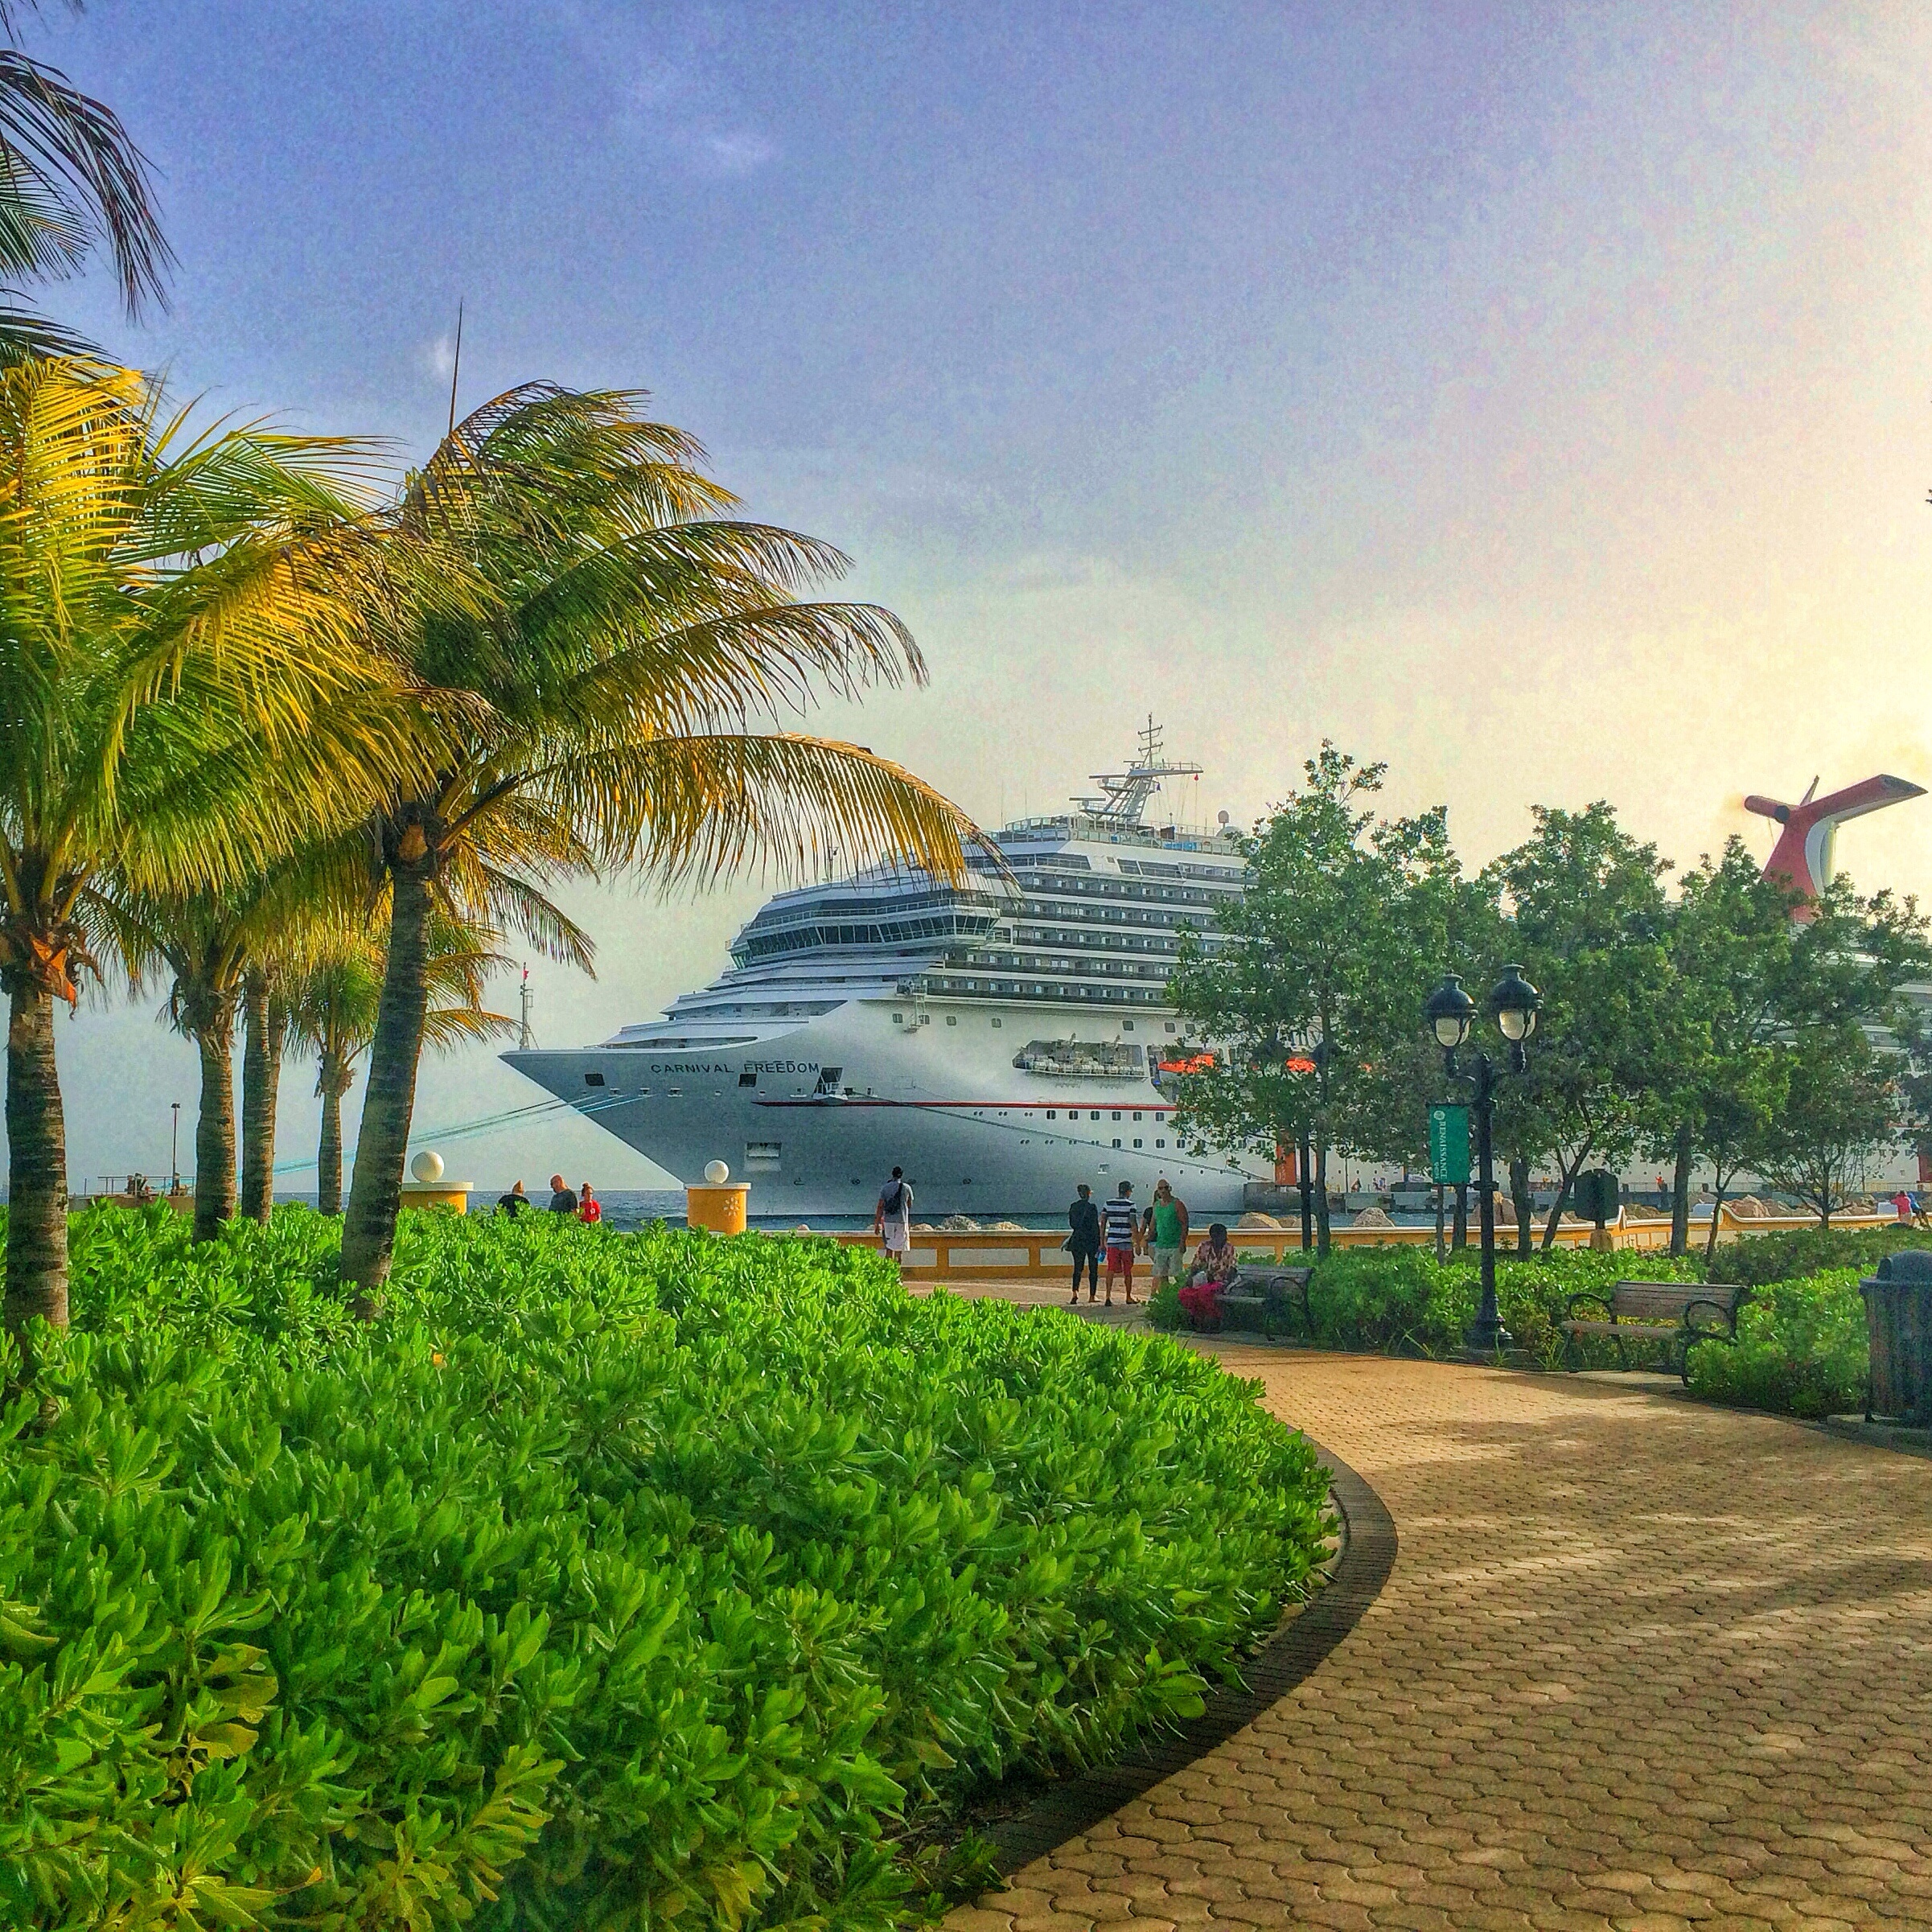 Carnival Freedom Docked in Curacao